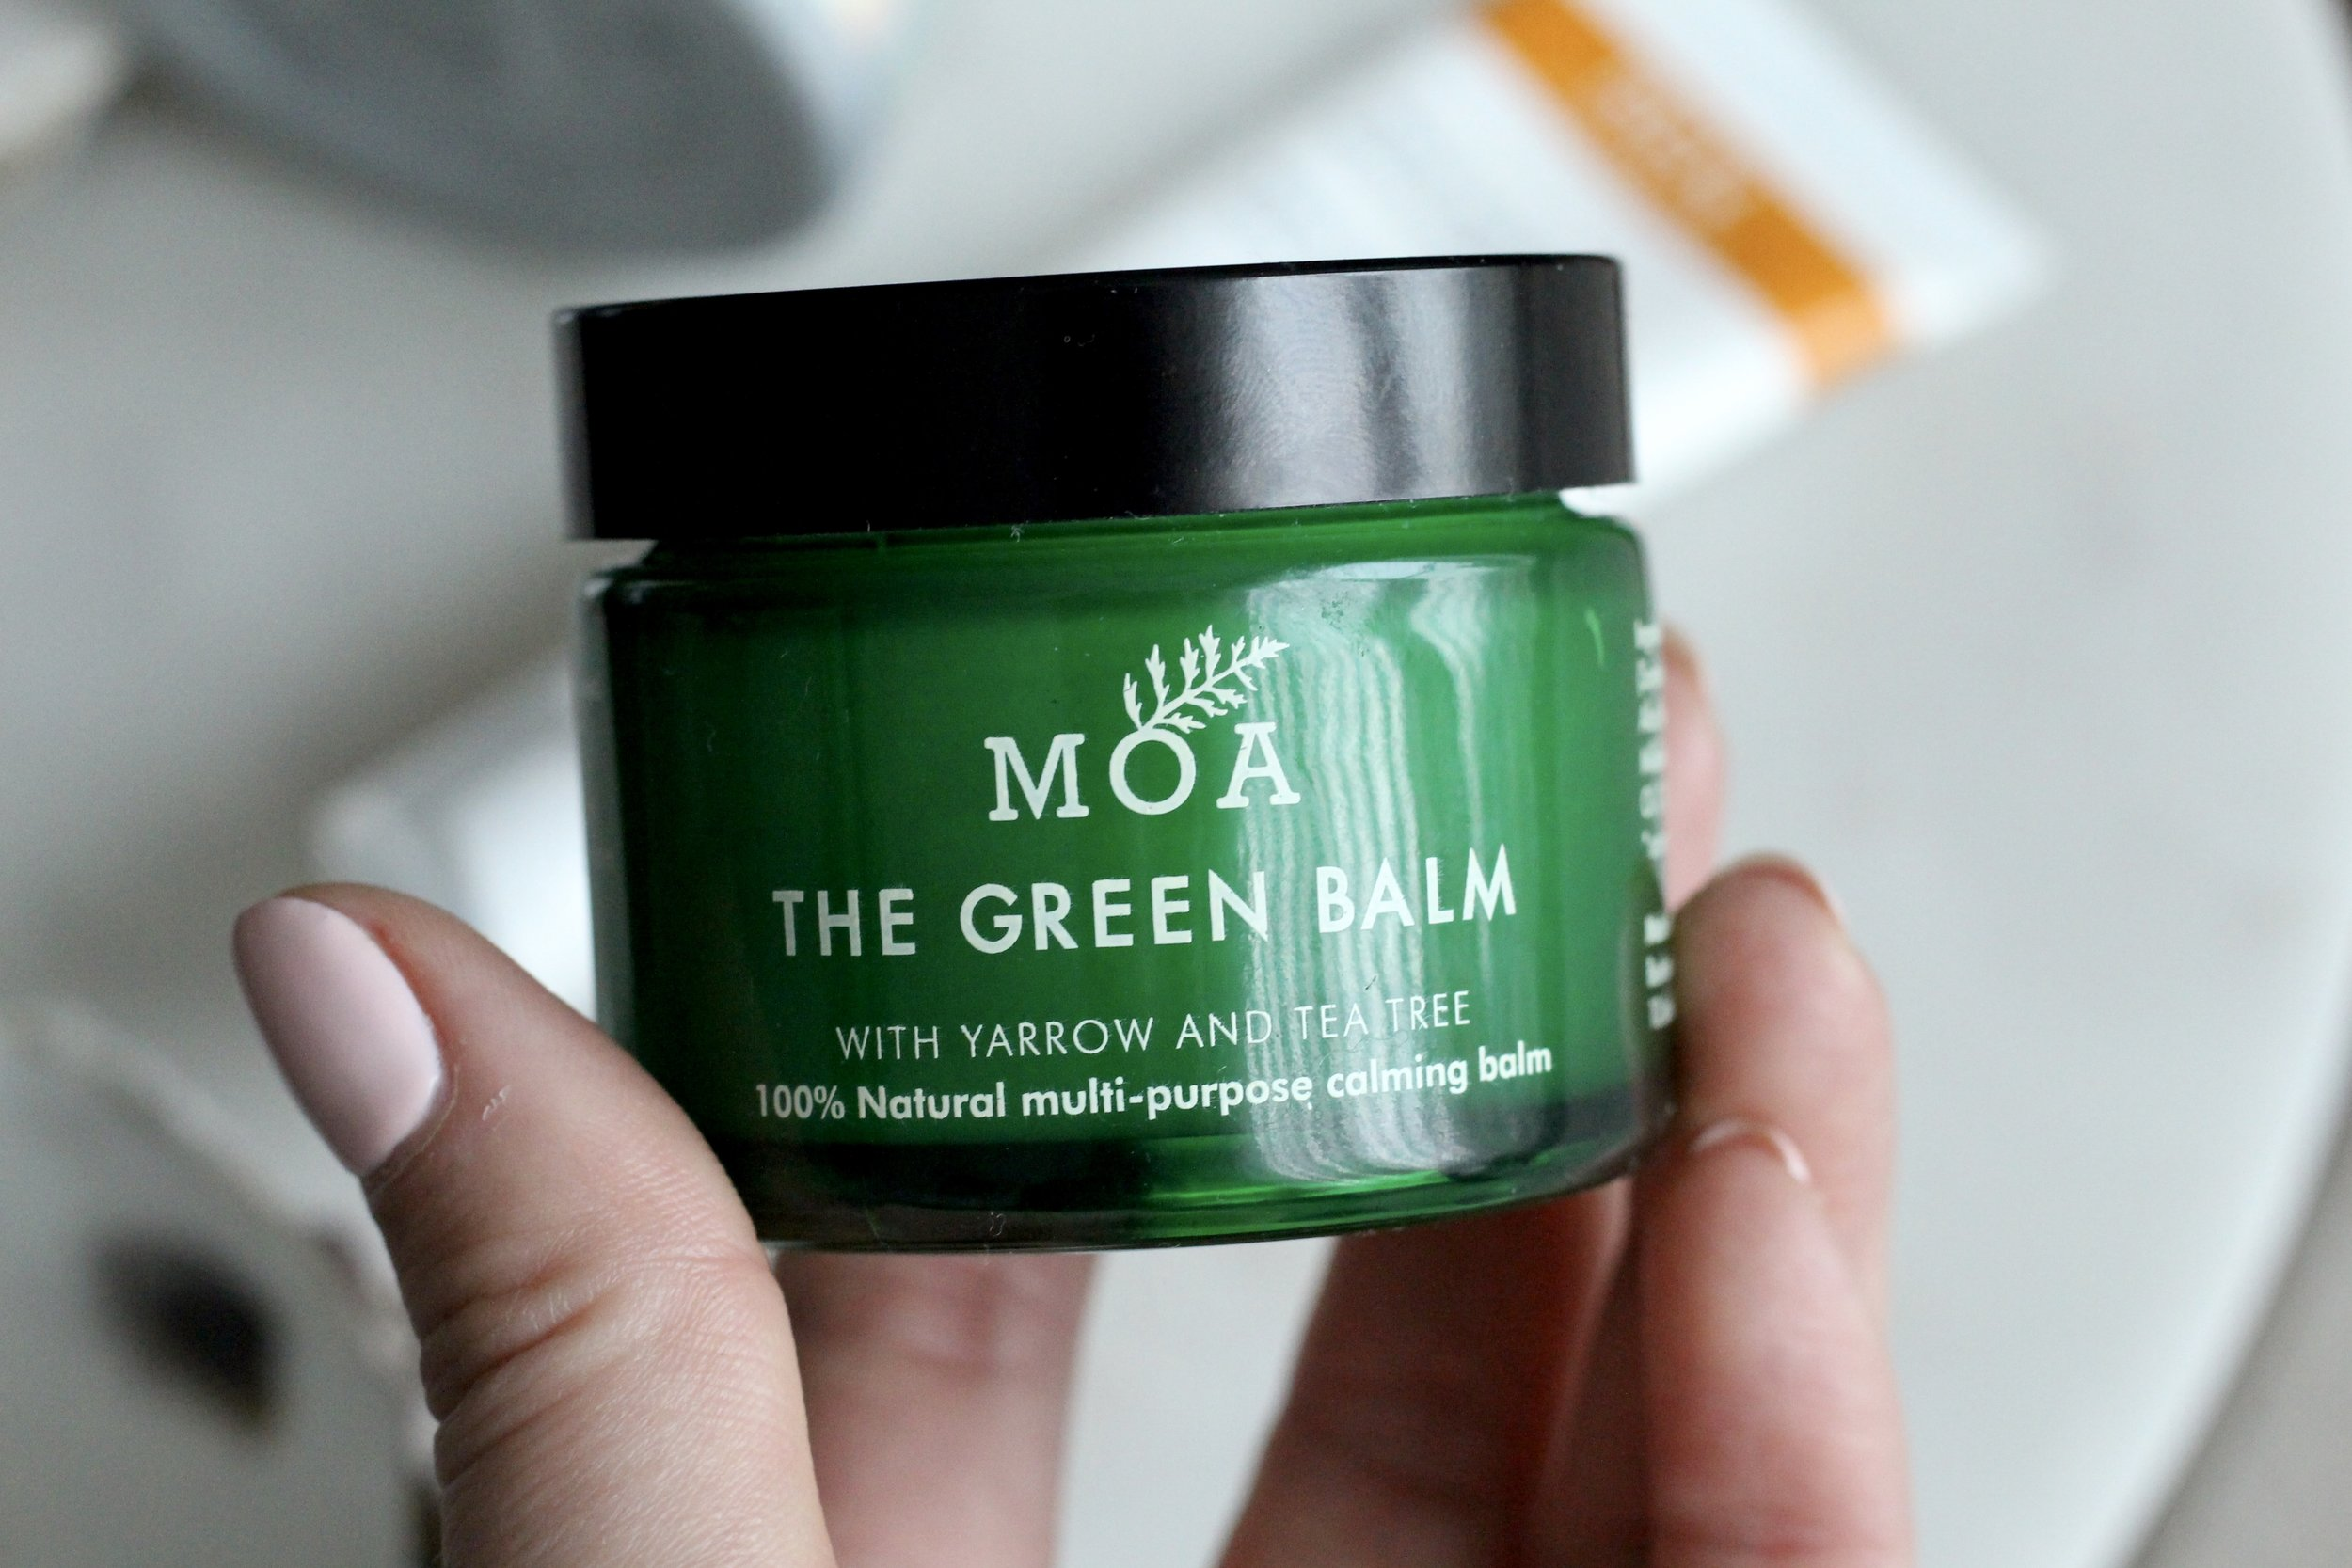 MAGIC ORGANIC APOTHECARY - THE GREEN BALM - 100% NATURAL MULTI-PURPOSE CALMING BALM